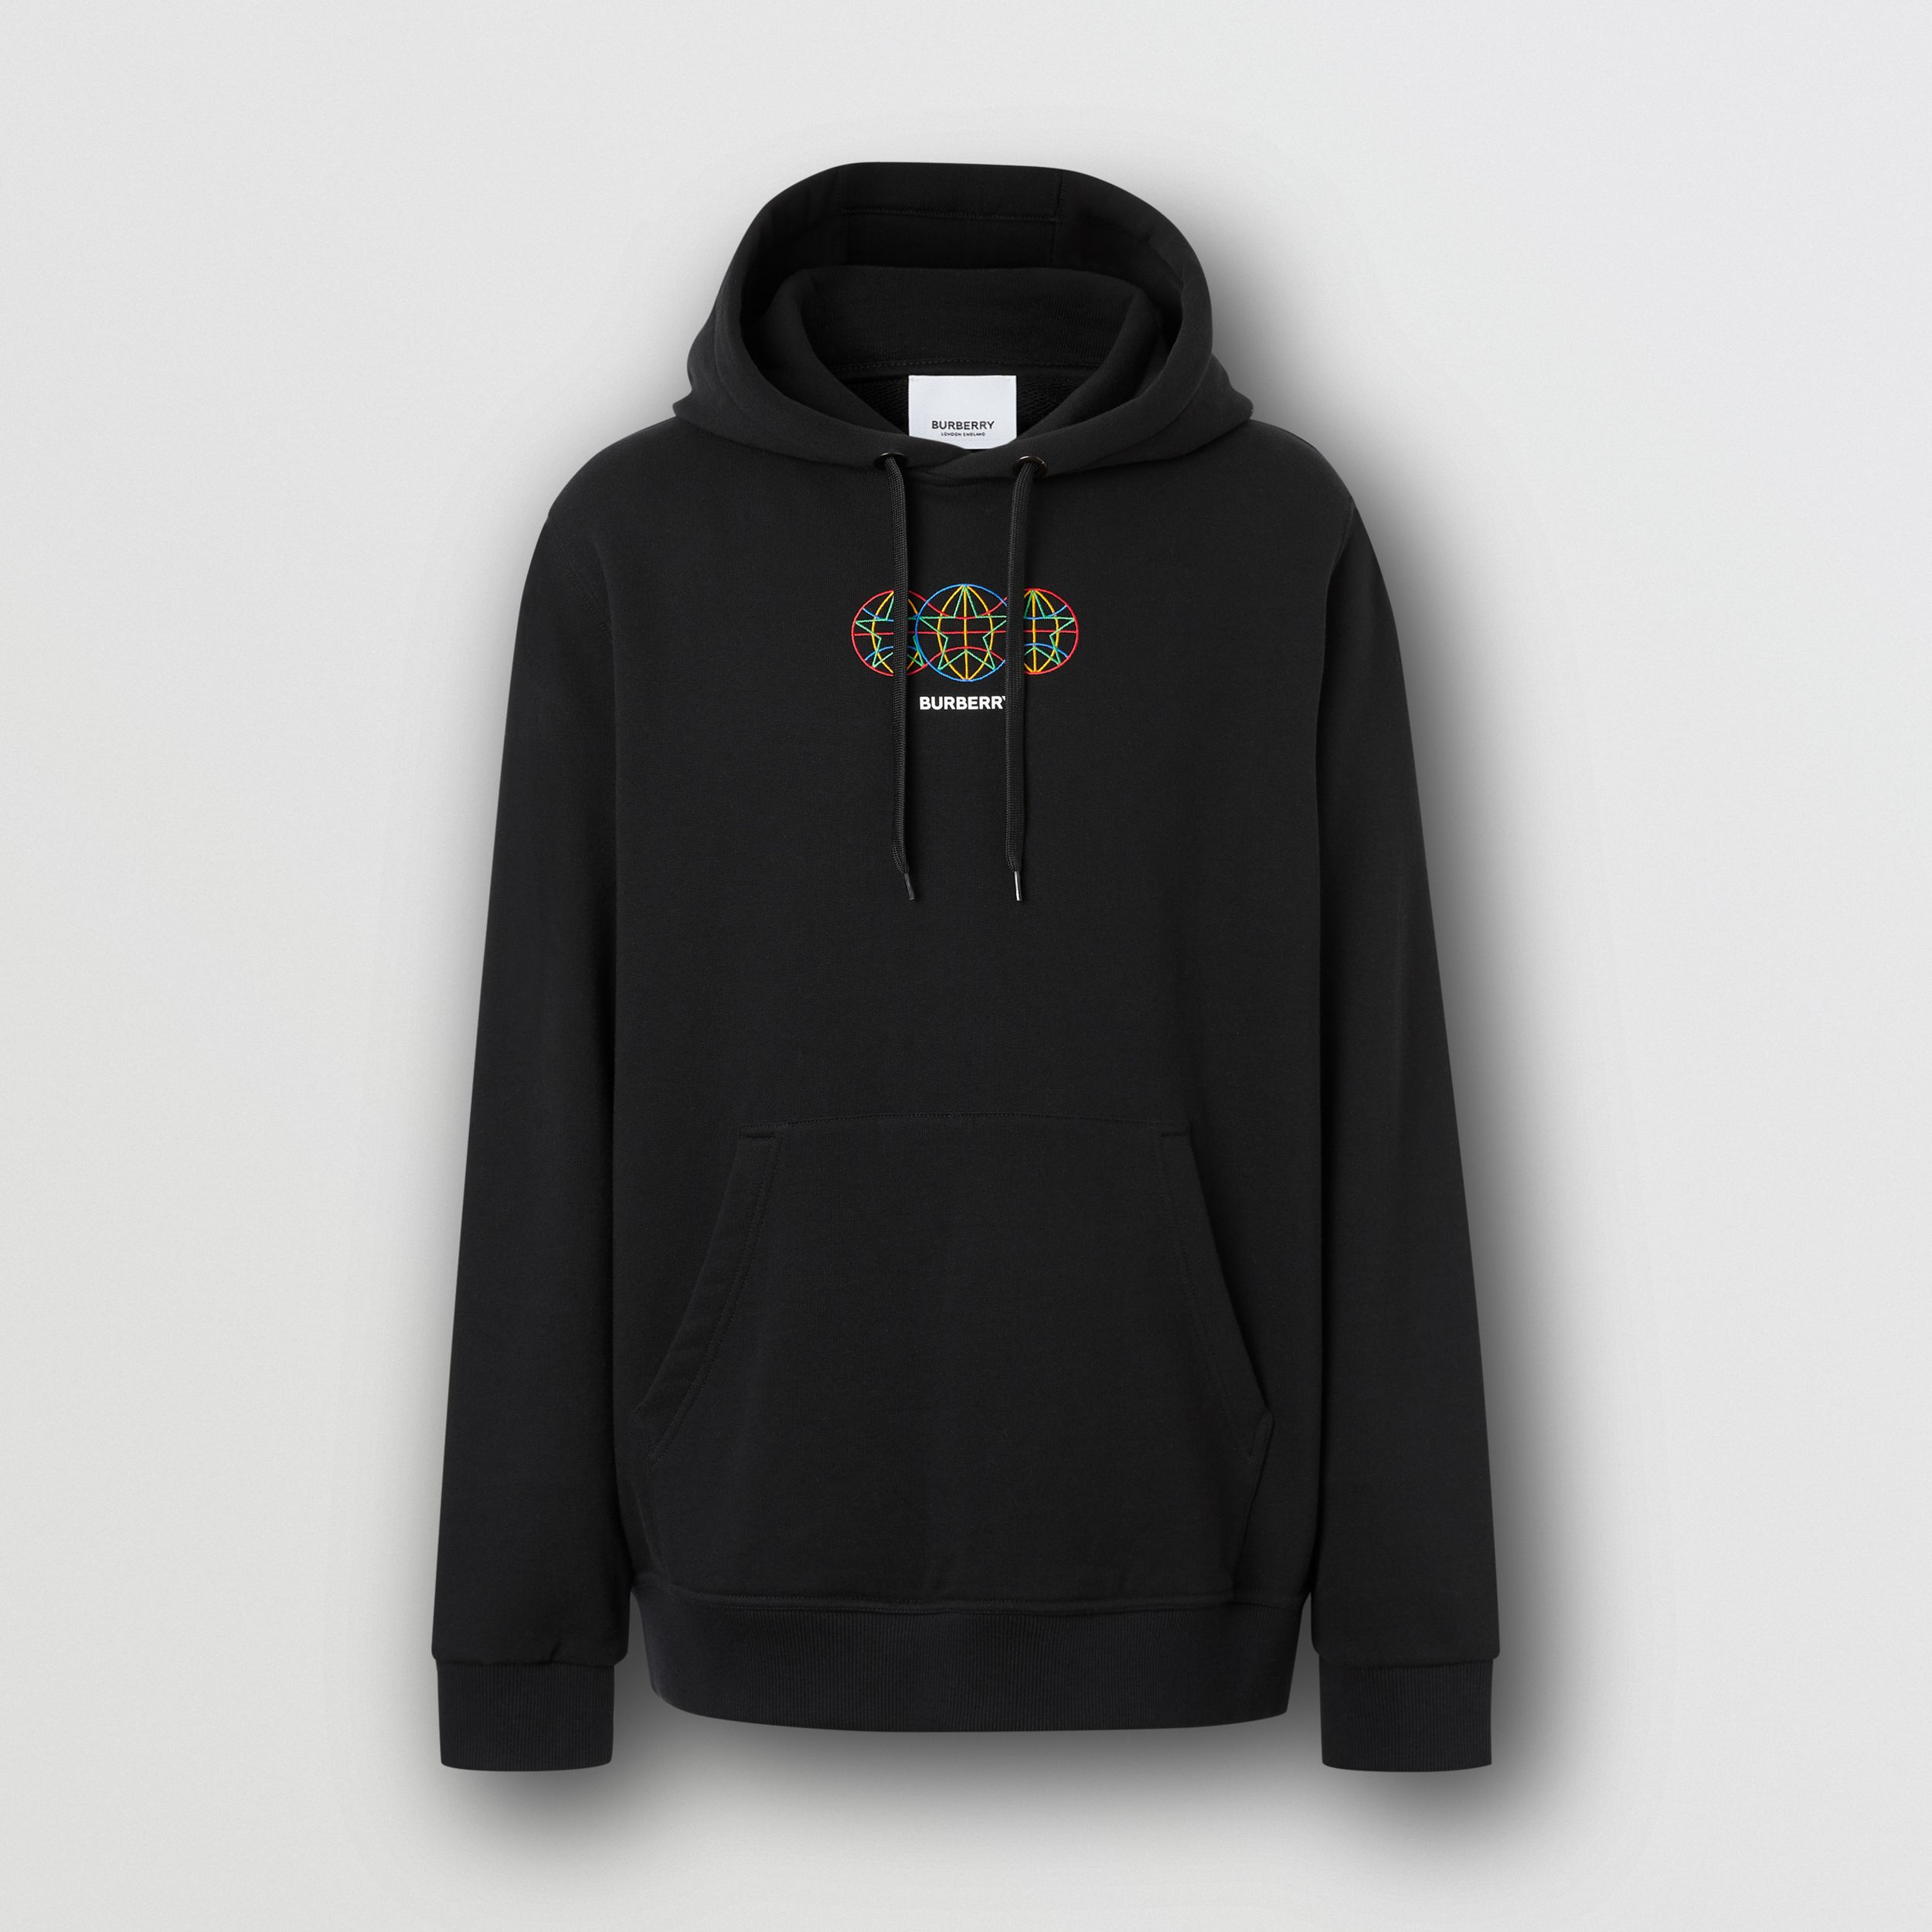 Embroidered Globe Graphic Cotton Hoodie in Black - Men | Burberry - 4